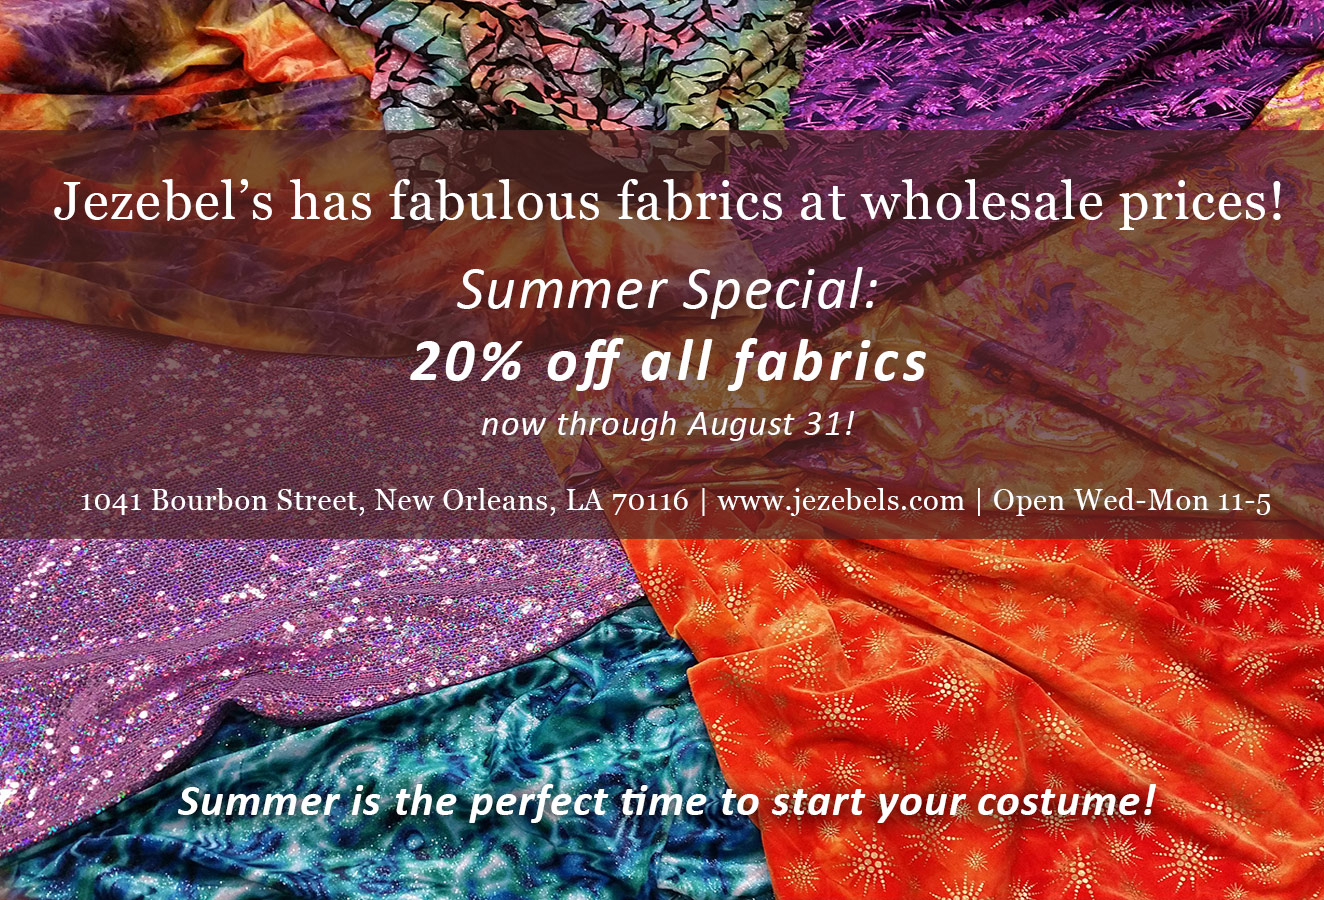 Jezebels has fabulous fabrics at wholesale prices! Summer Special: 20% off all fabrics now through August 31! Summer is the perfect time to start your costume!